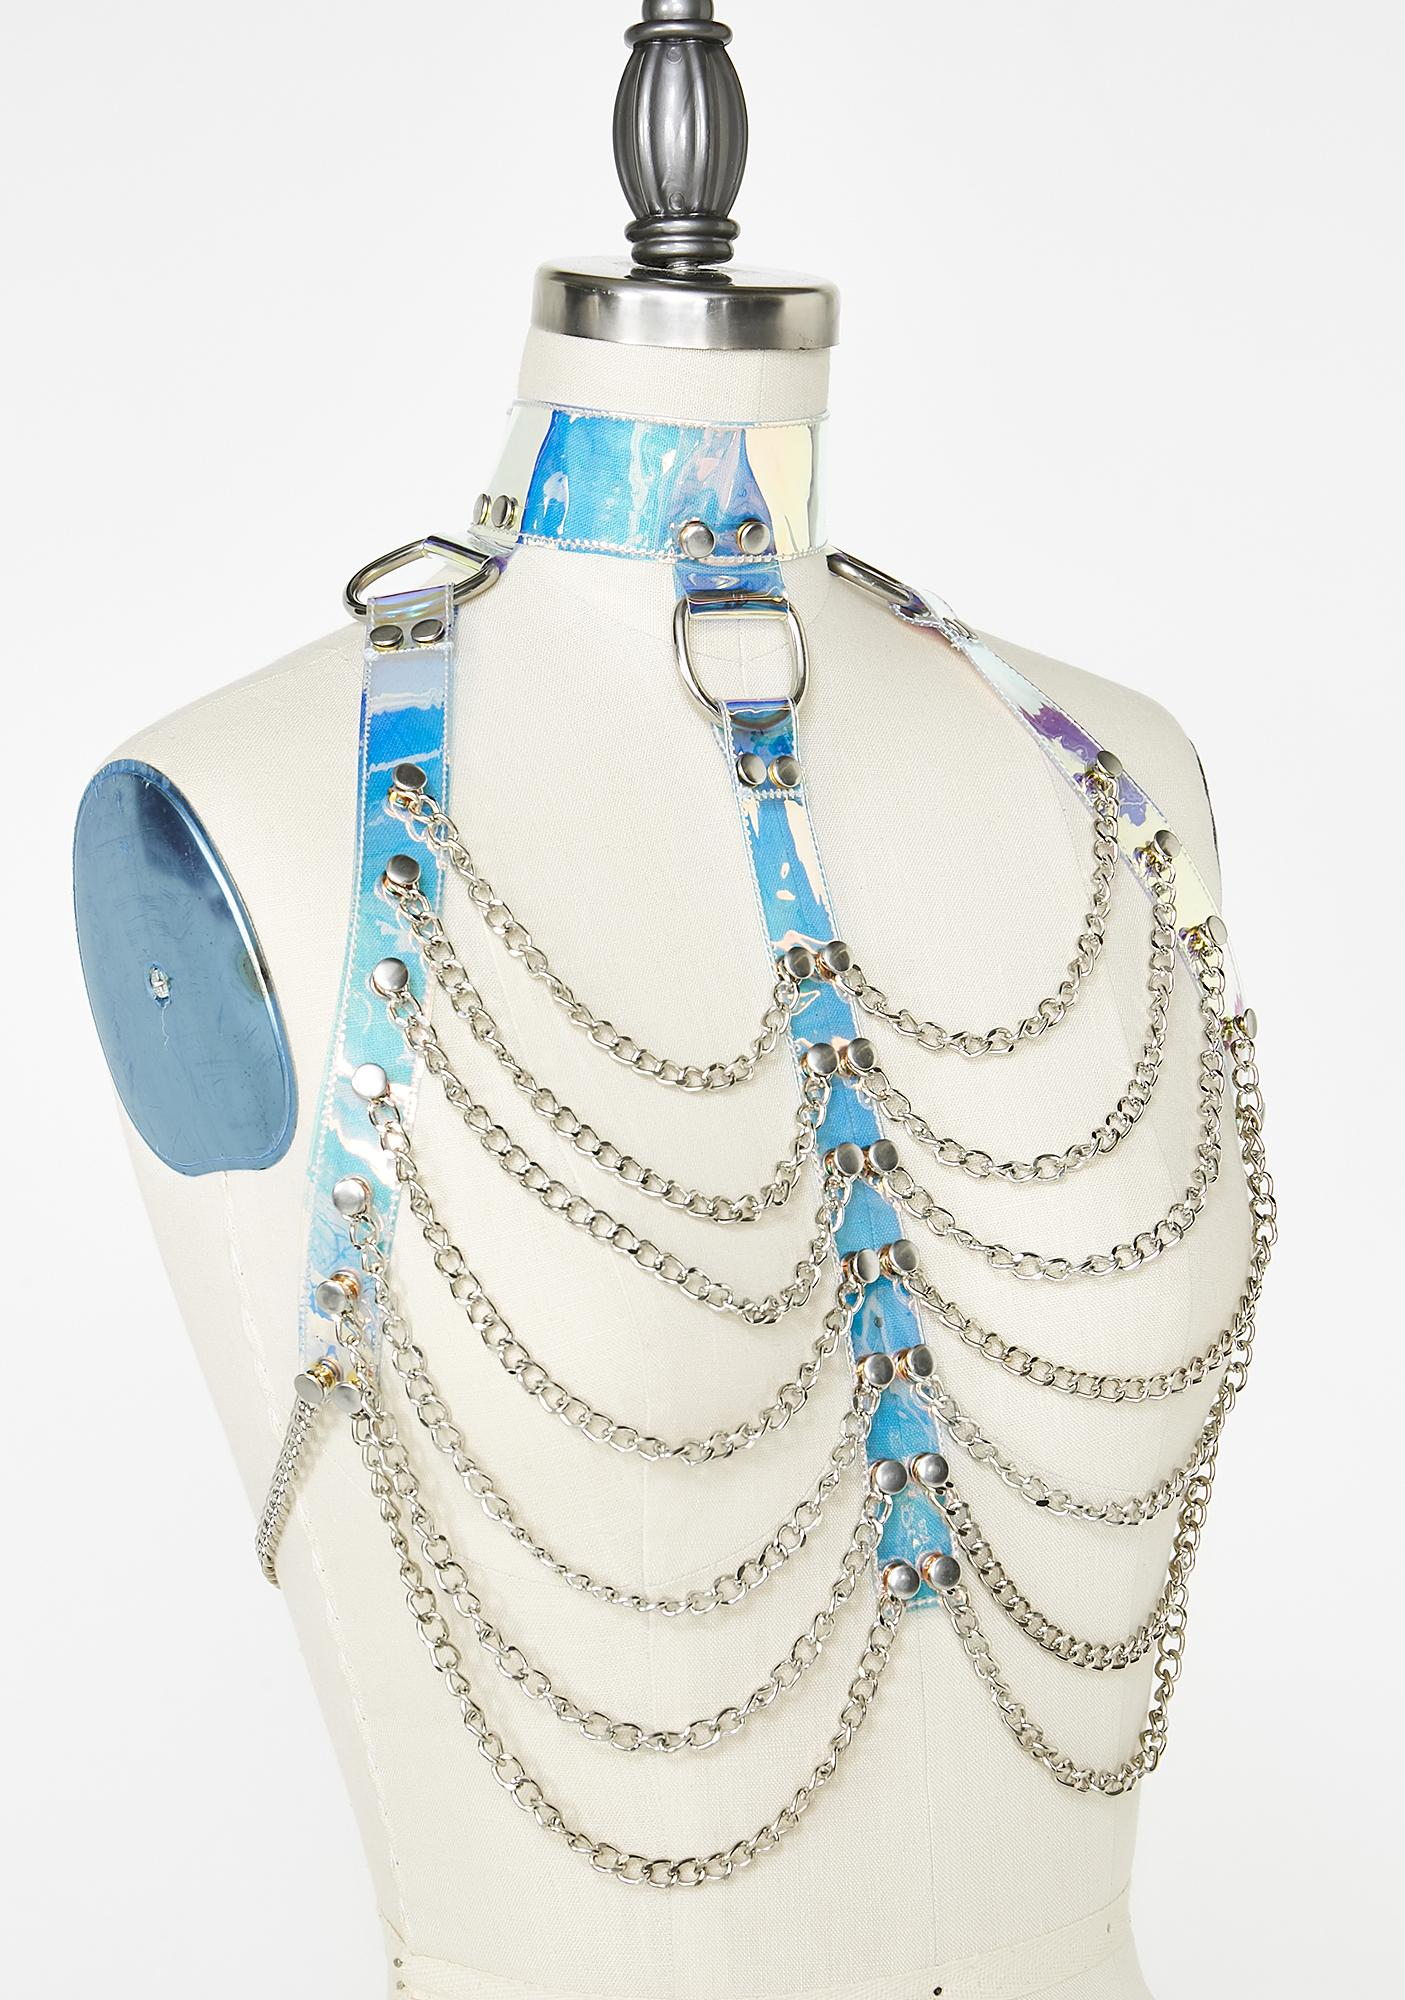 Club Exx Era Magica Chain Harness